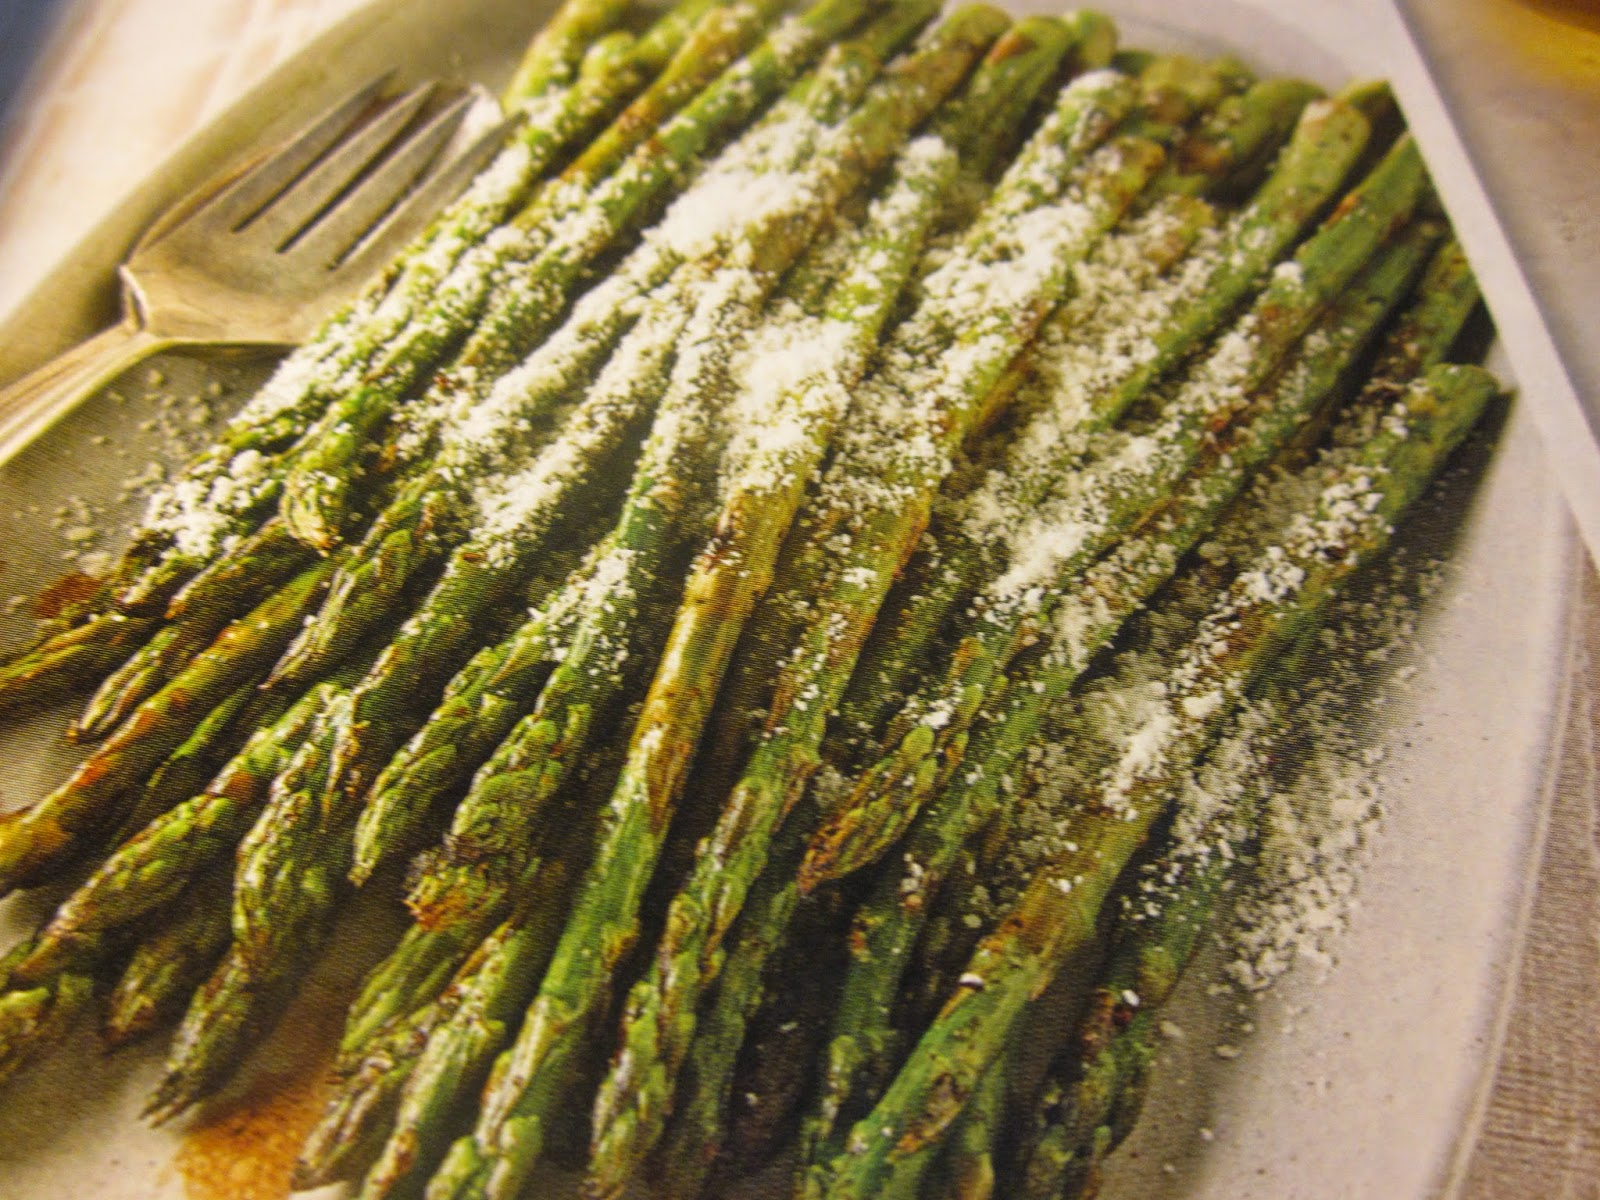 QUICK FIX RECIPES: GRILLED ASPARAGUS WITH PARMESAN